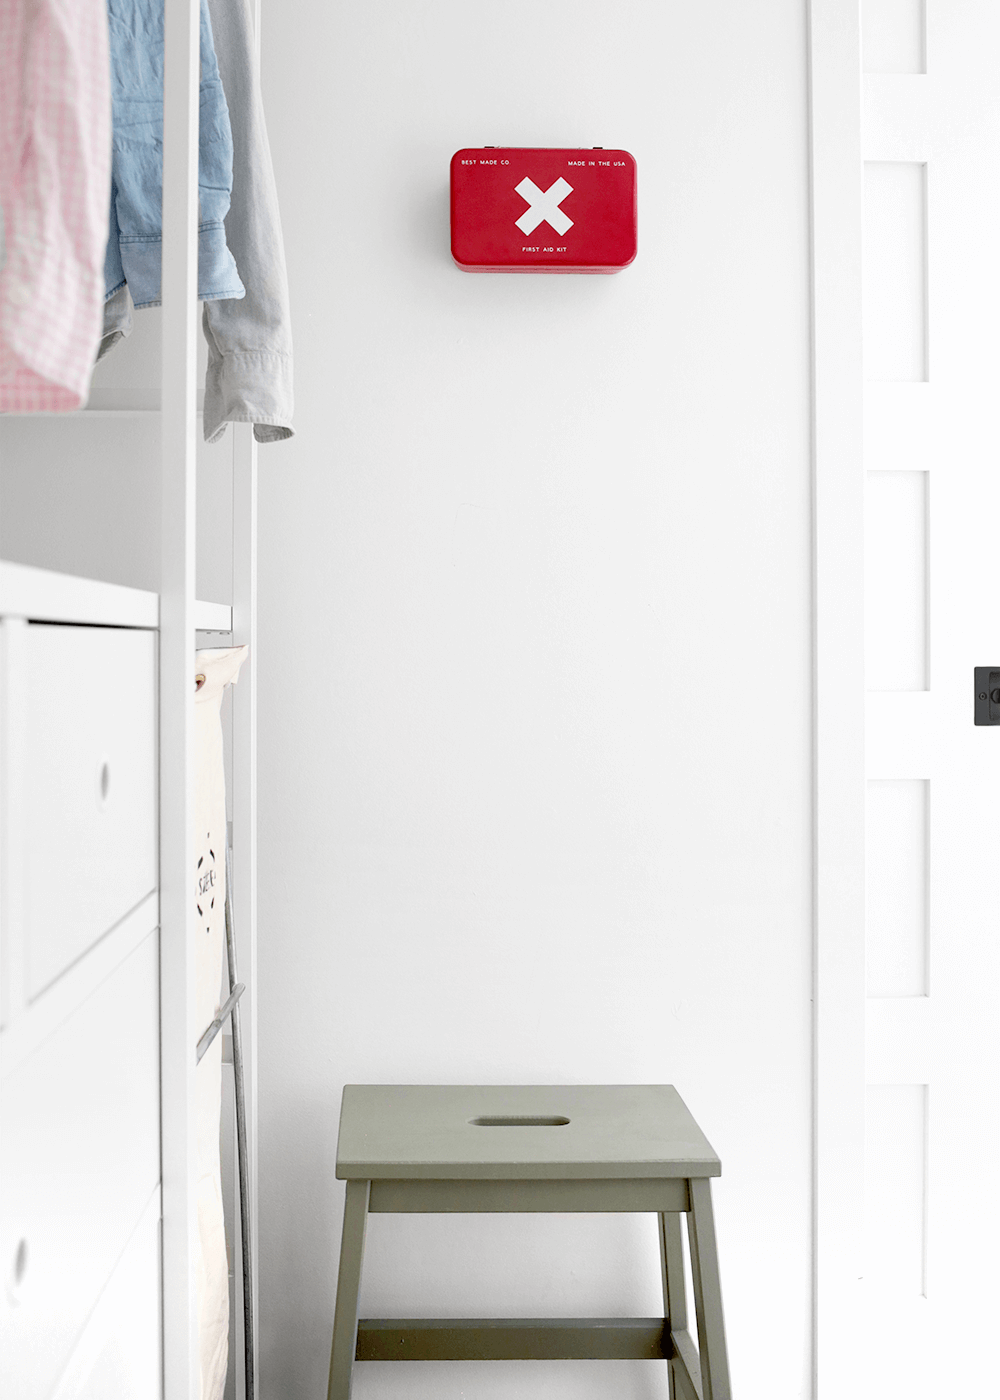 The Faux Martha laundry room with red medical kit